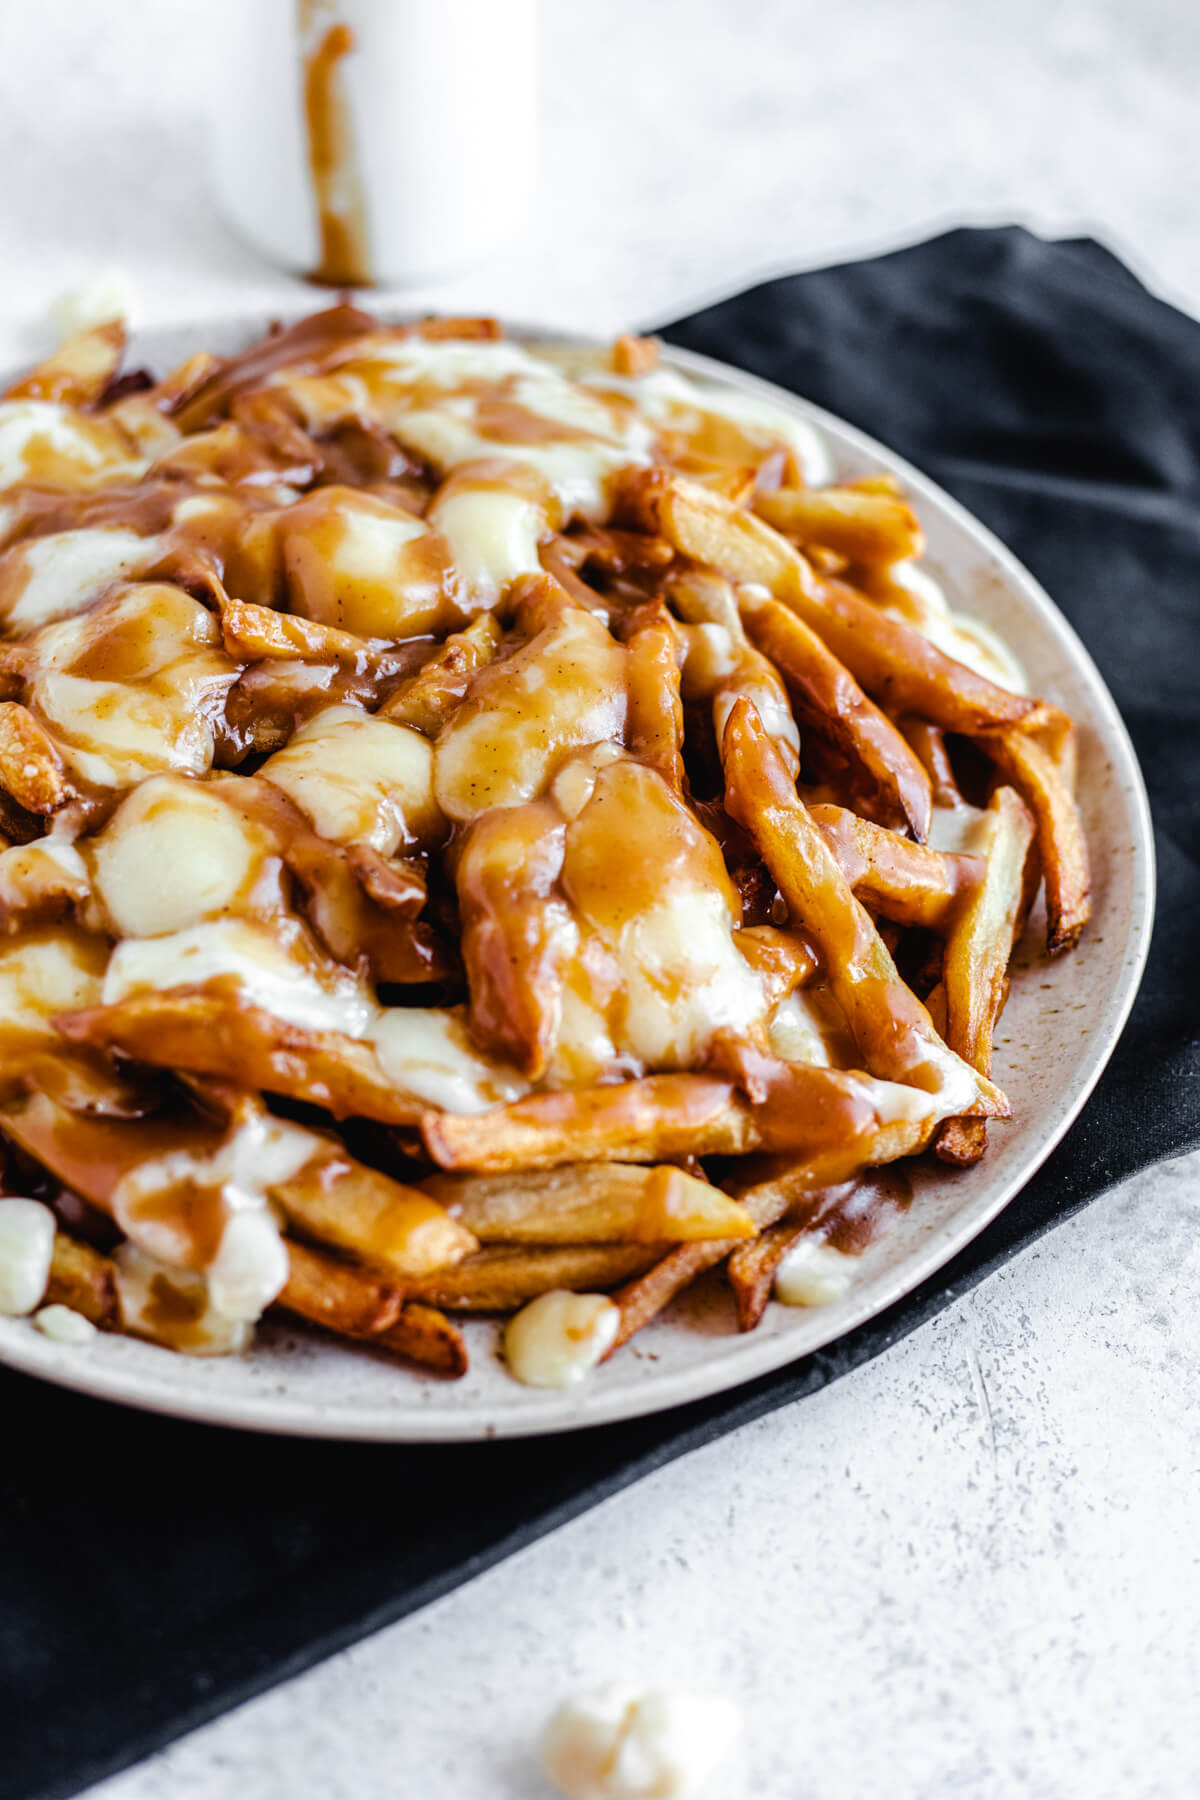 plate filled with homemade fries, cheese curds and brown gravy on a black rectangle cloth napkin